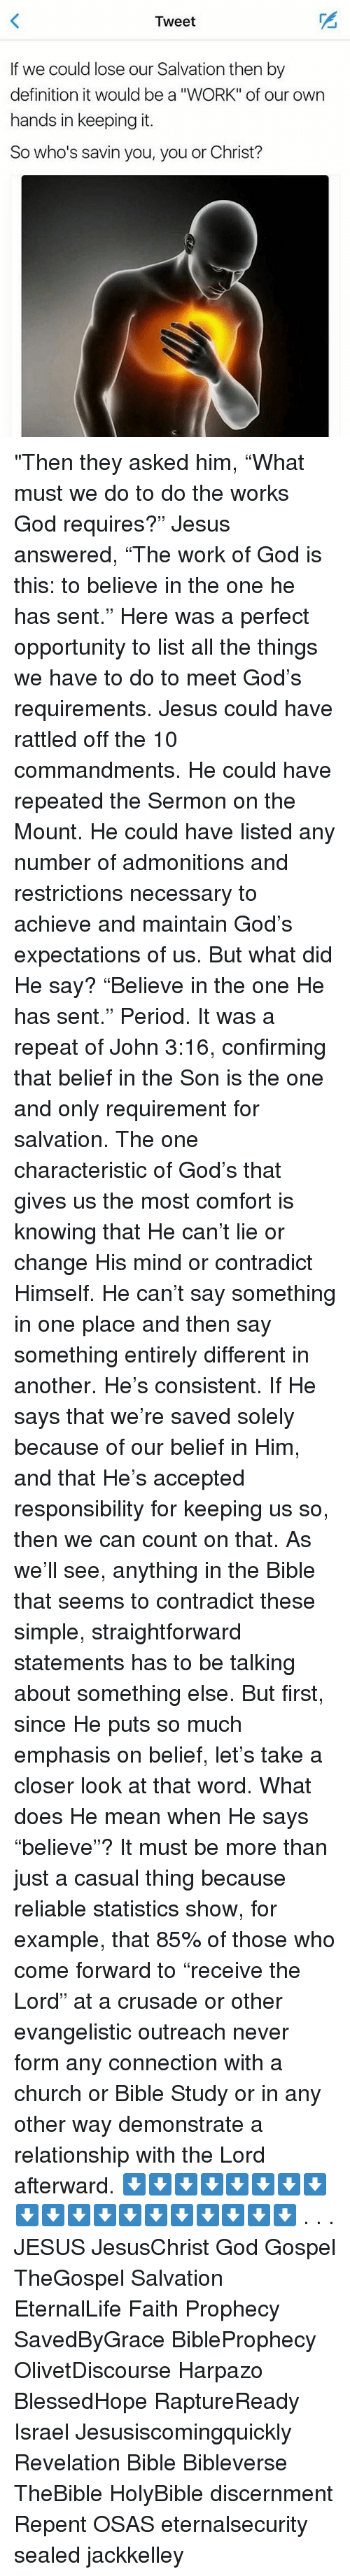 the unique characteristics that define jesus as the perfect son of god Traditionally, spirituality refers to a religious process of re-formation which aims to recover the original shape of man, oriented at the image of god as exemplified by the founders and sacred texts of the religions of the world.